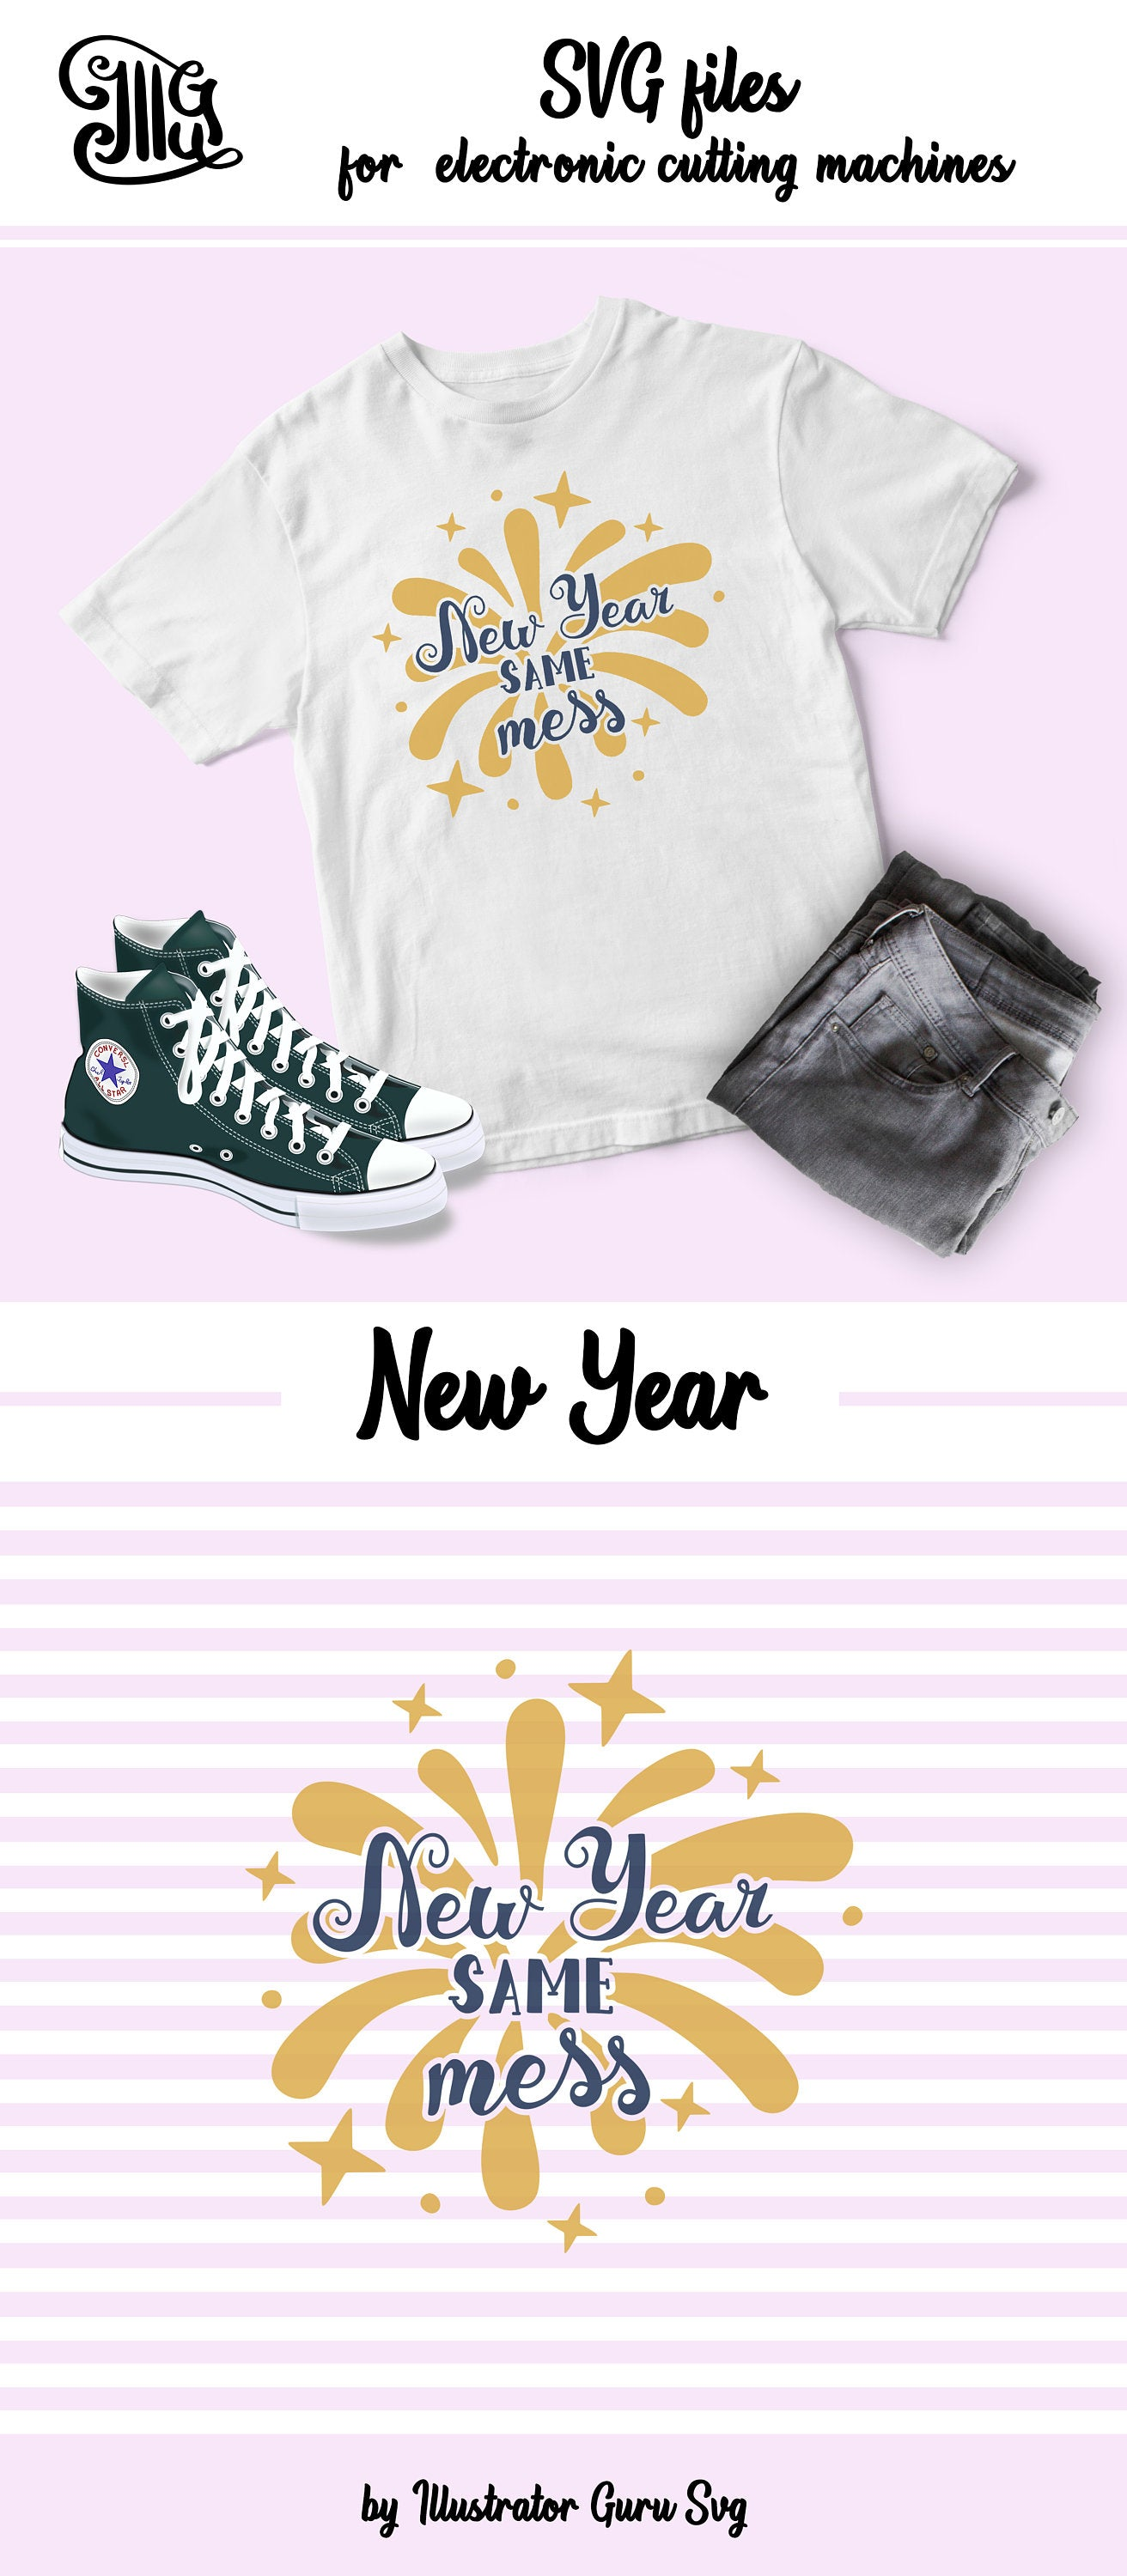 New Year Svg, New Year Same Mess Svg, Happy New Year Printable, Happy New Year PNG, Happy New Year Sign Svg-by Illustrator Guru